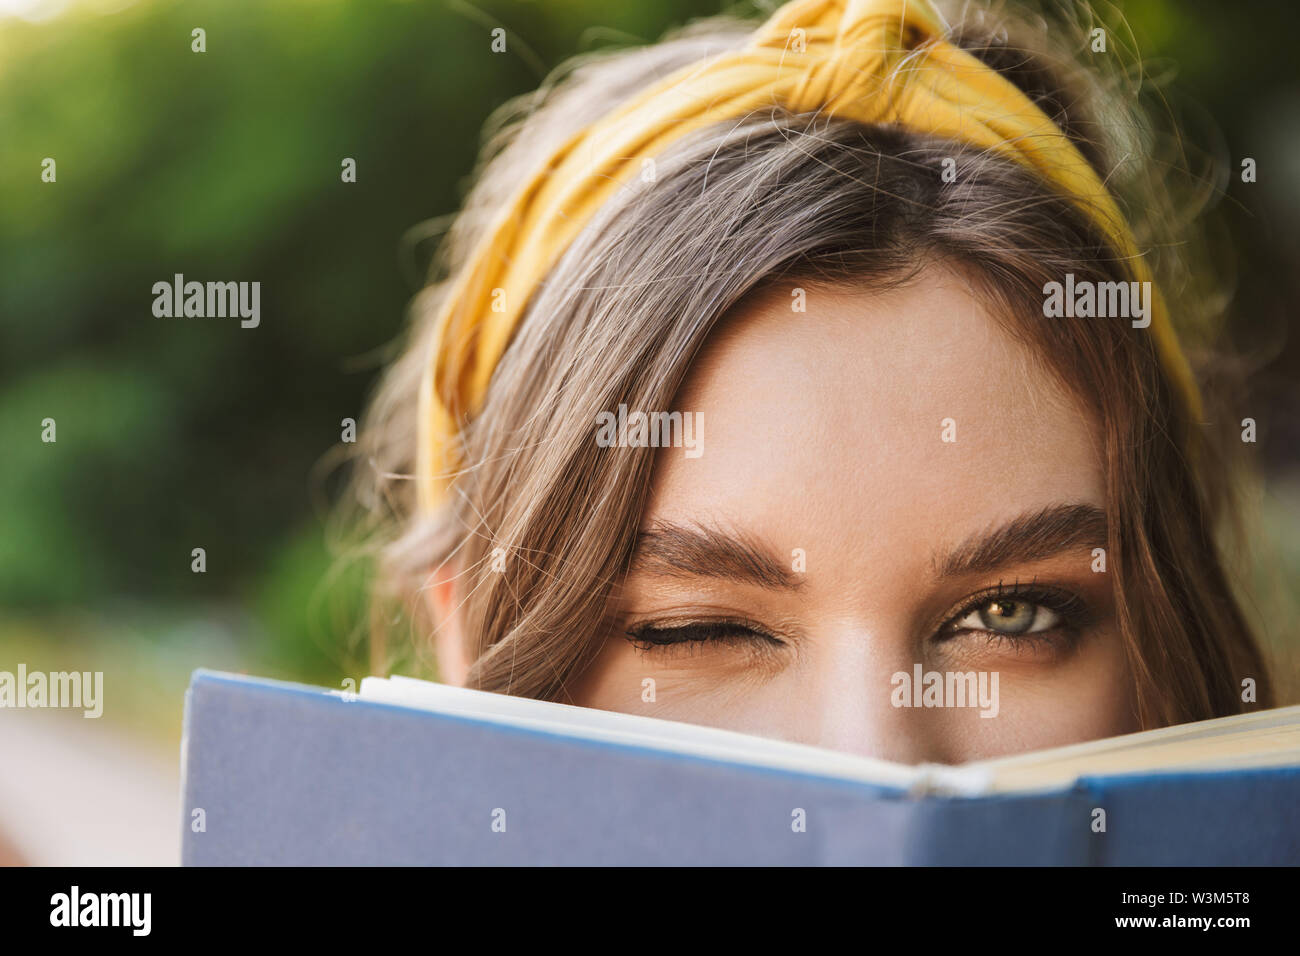 Photo of cute positive pretty beautiful young woman in green park reading book covering face winking. - Stock Image